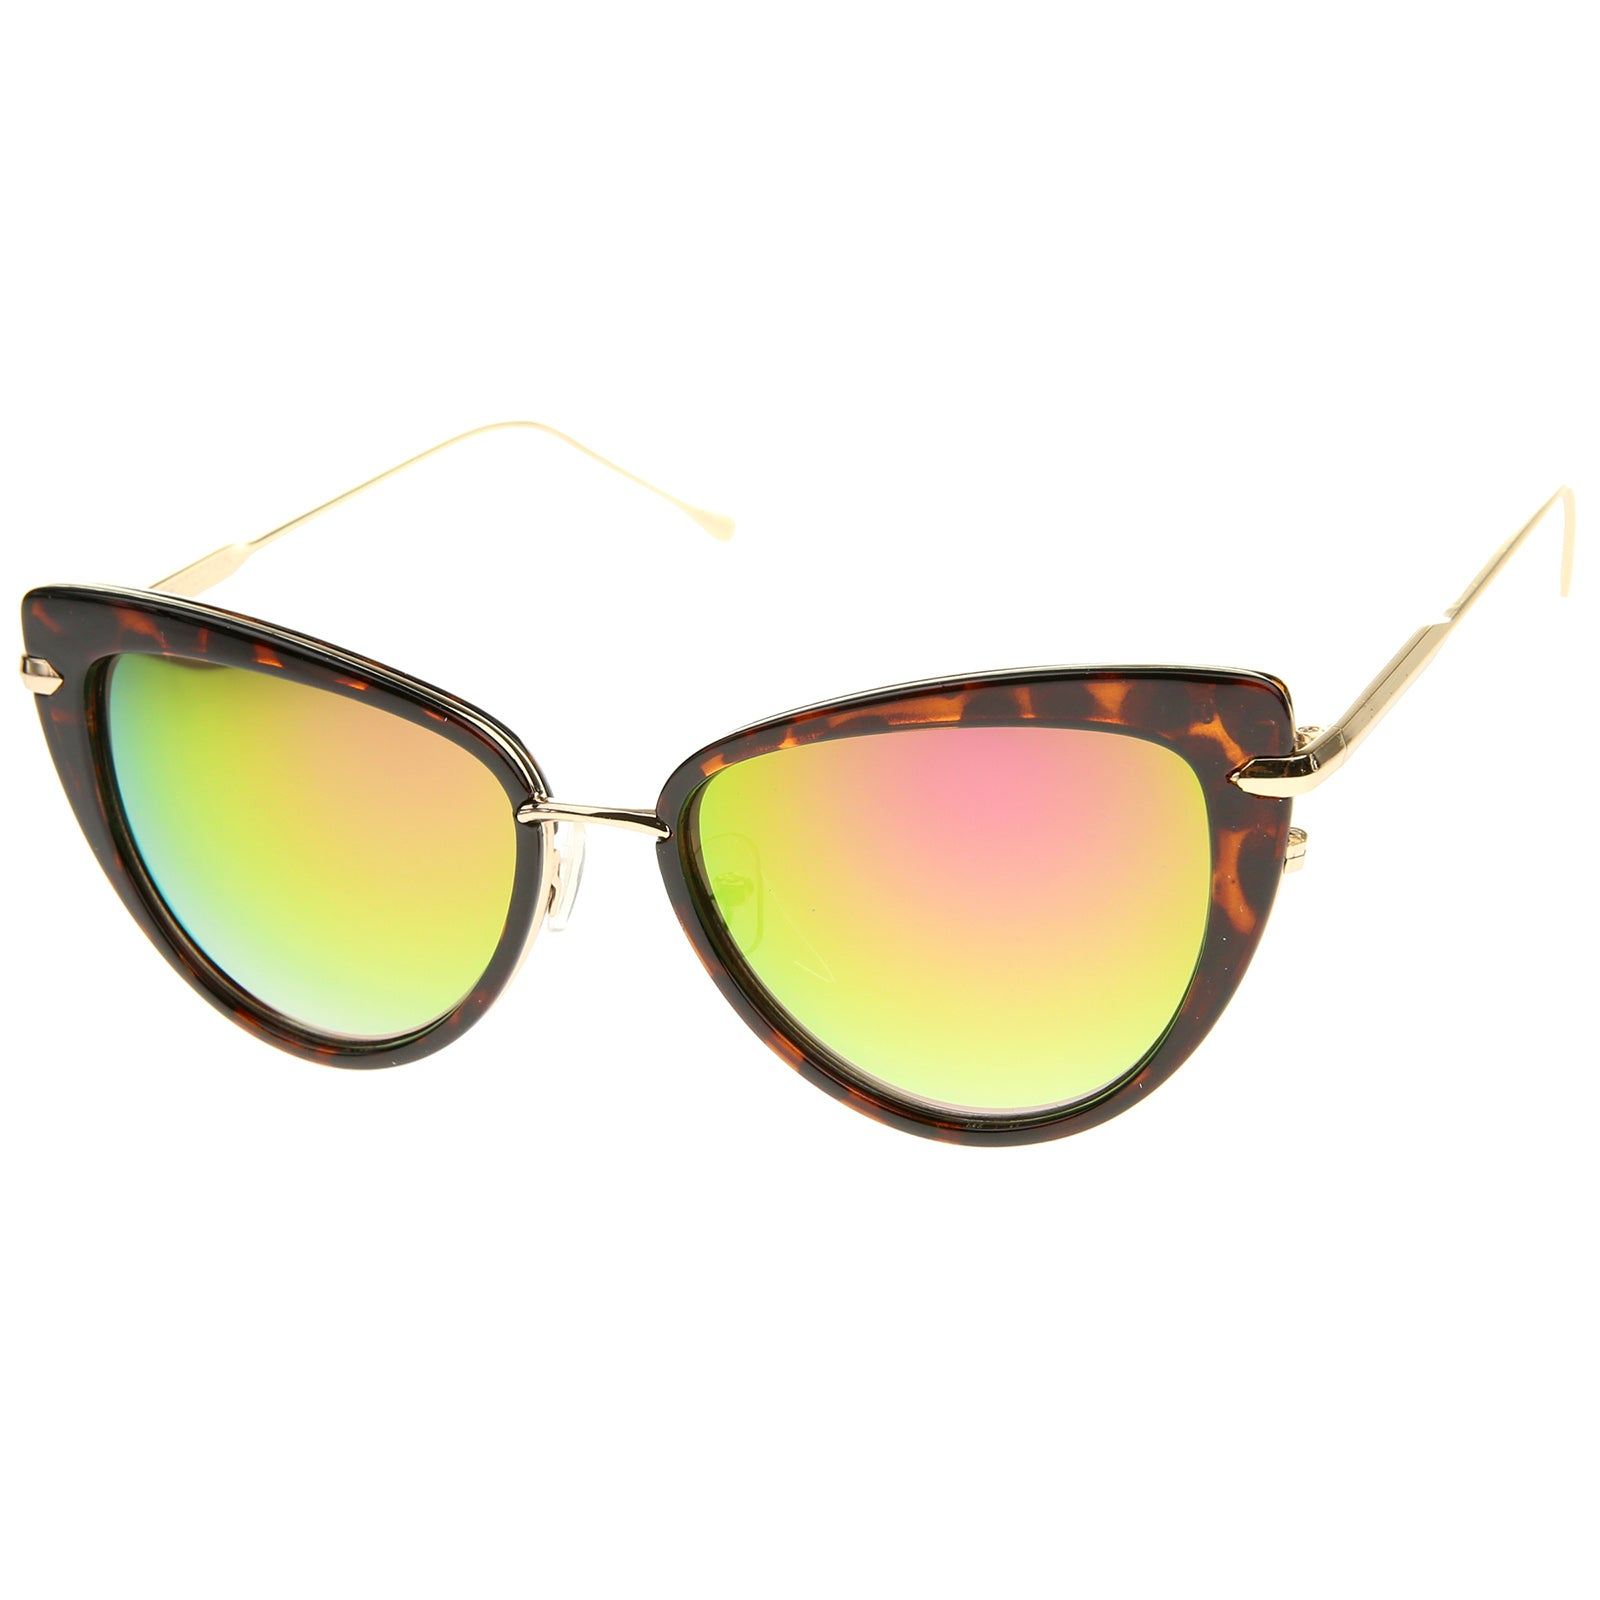 Women's High Fashion Metal Temple Super Cat Eye Sunglasses 55mm - sunglass.la - 22